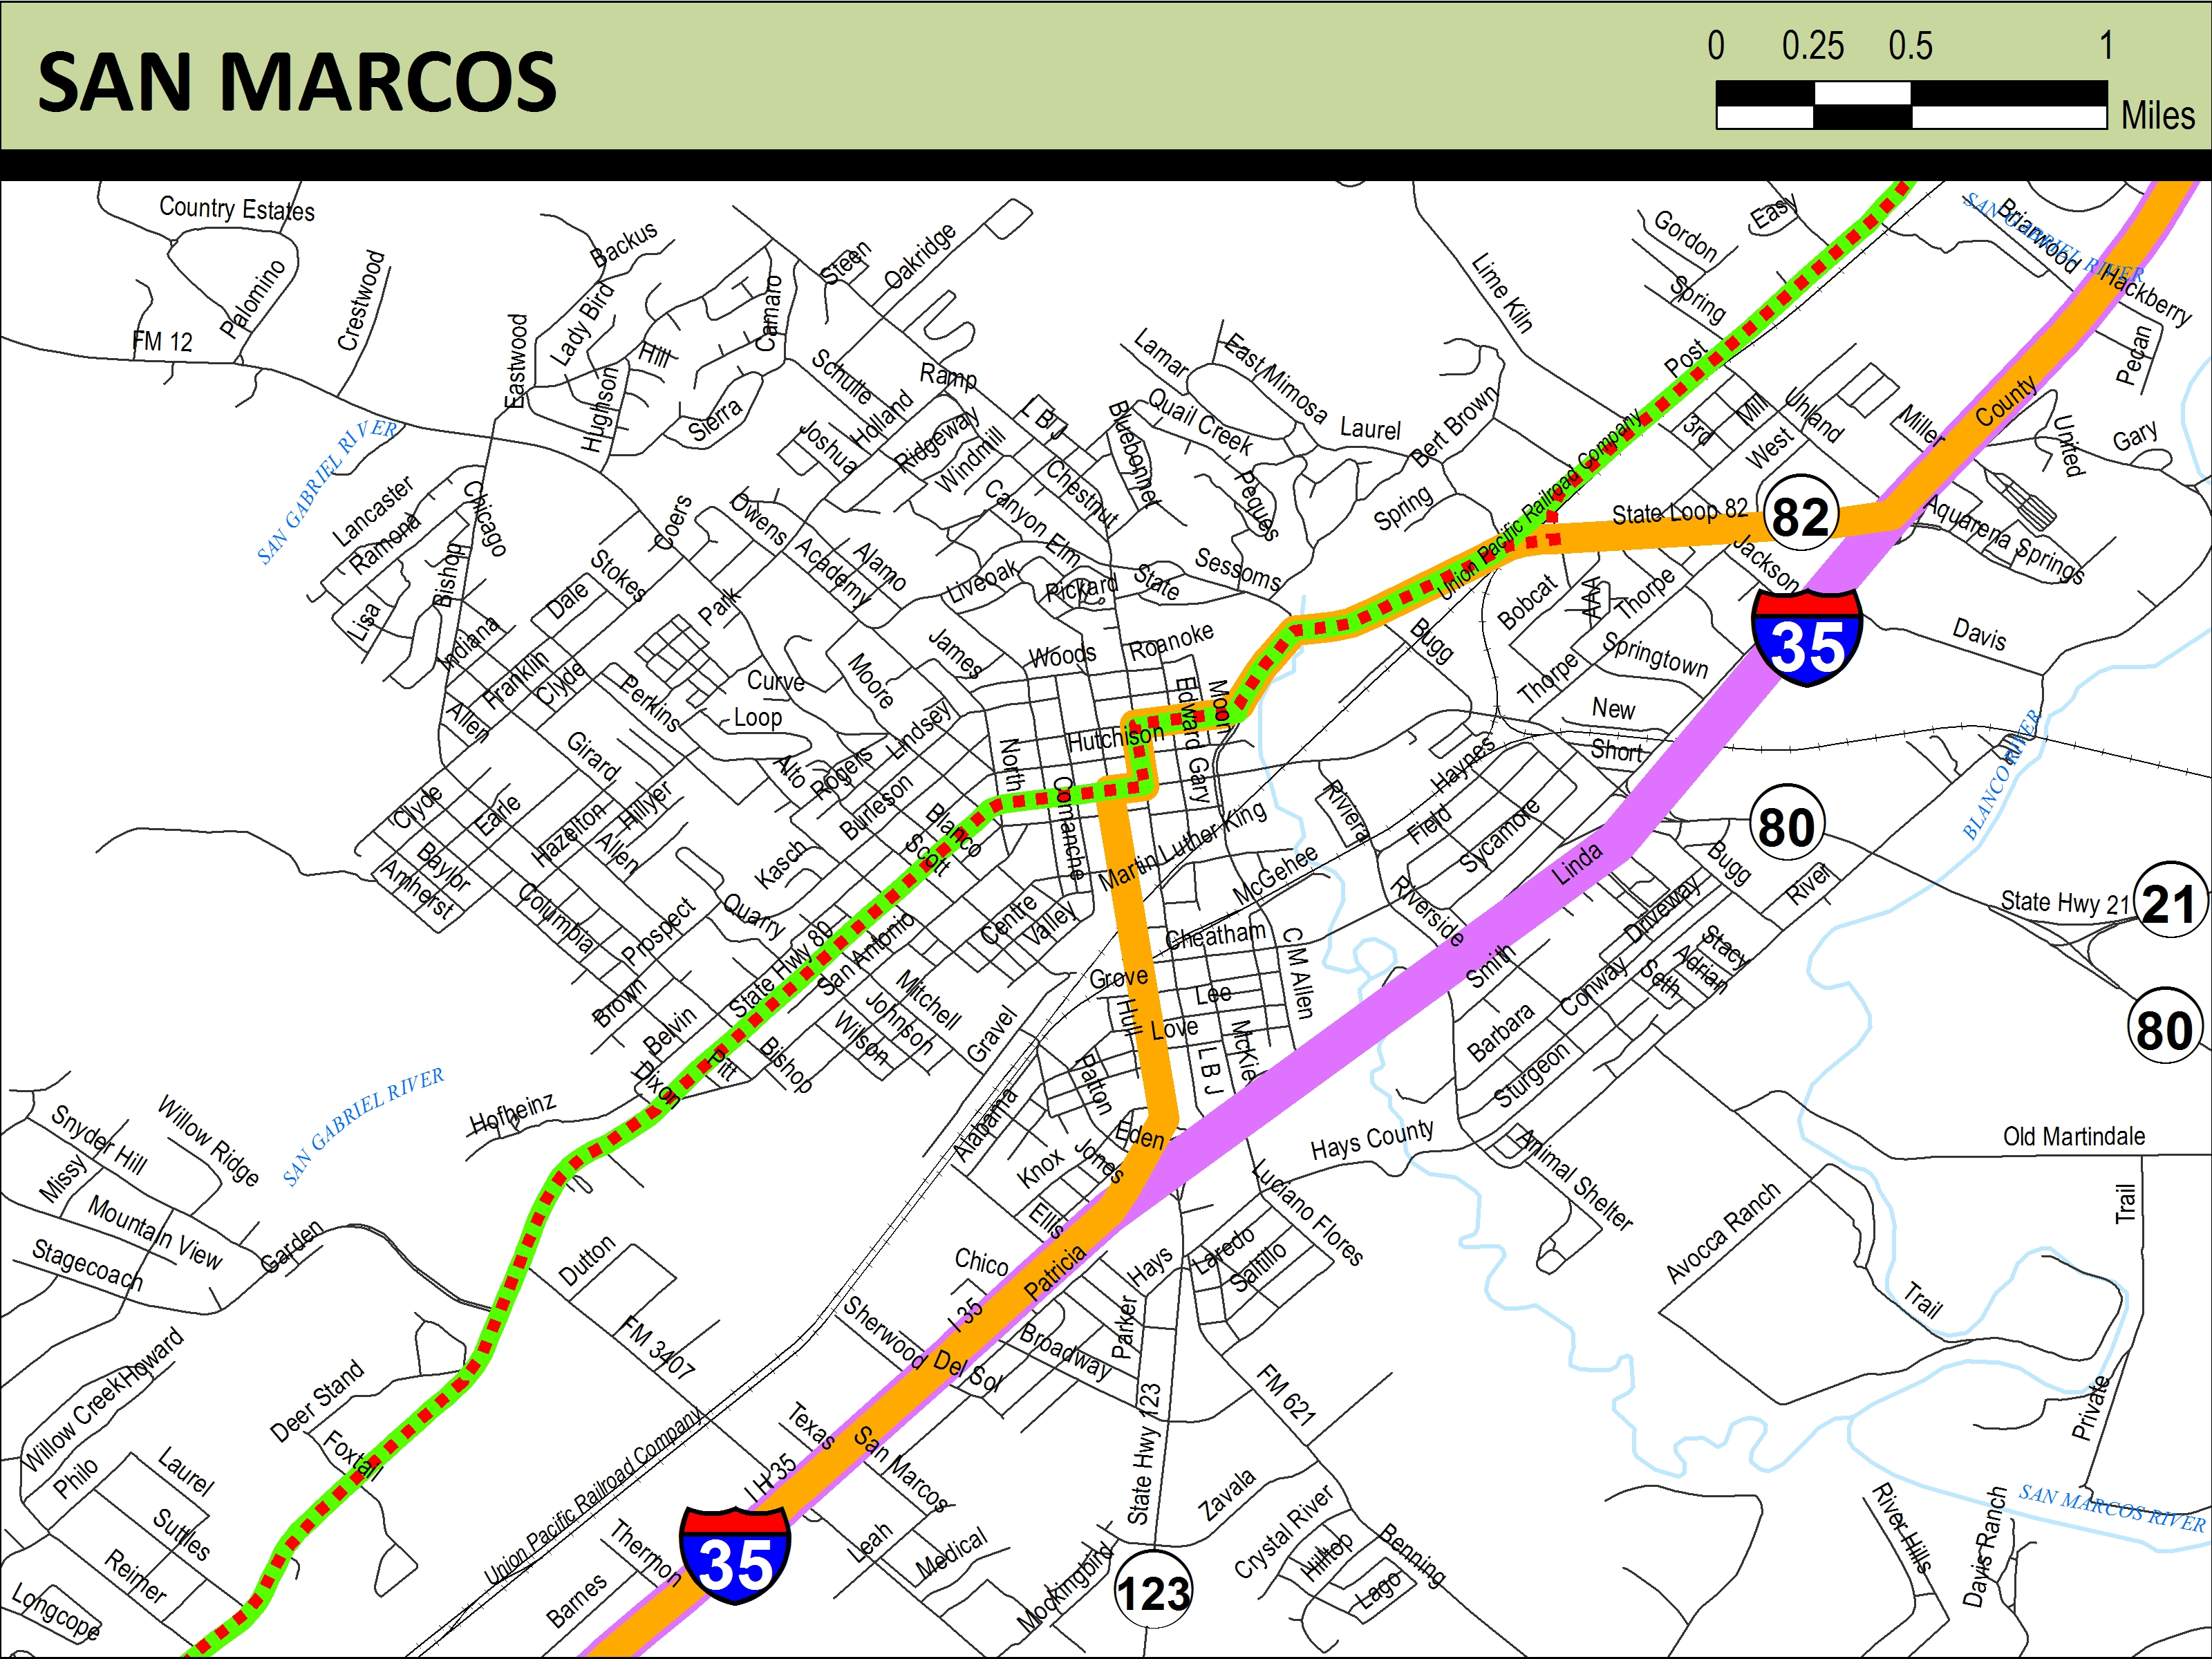 Meridian Highway Maps | THC.Texas.gov - Texas Historical Commission